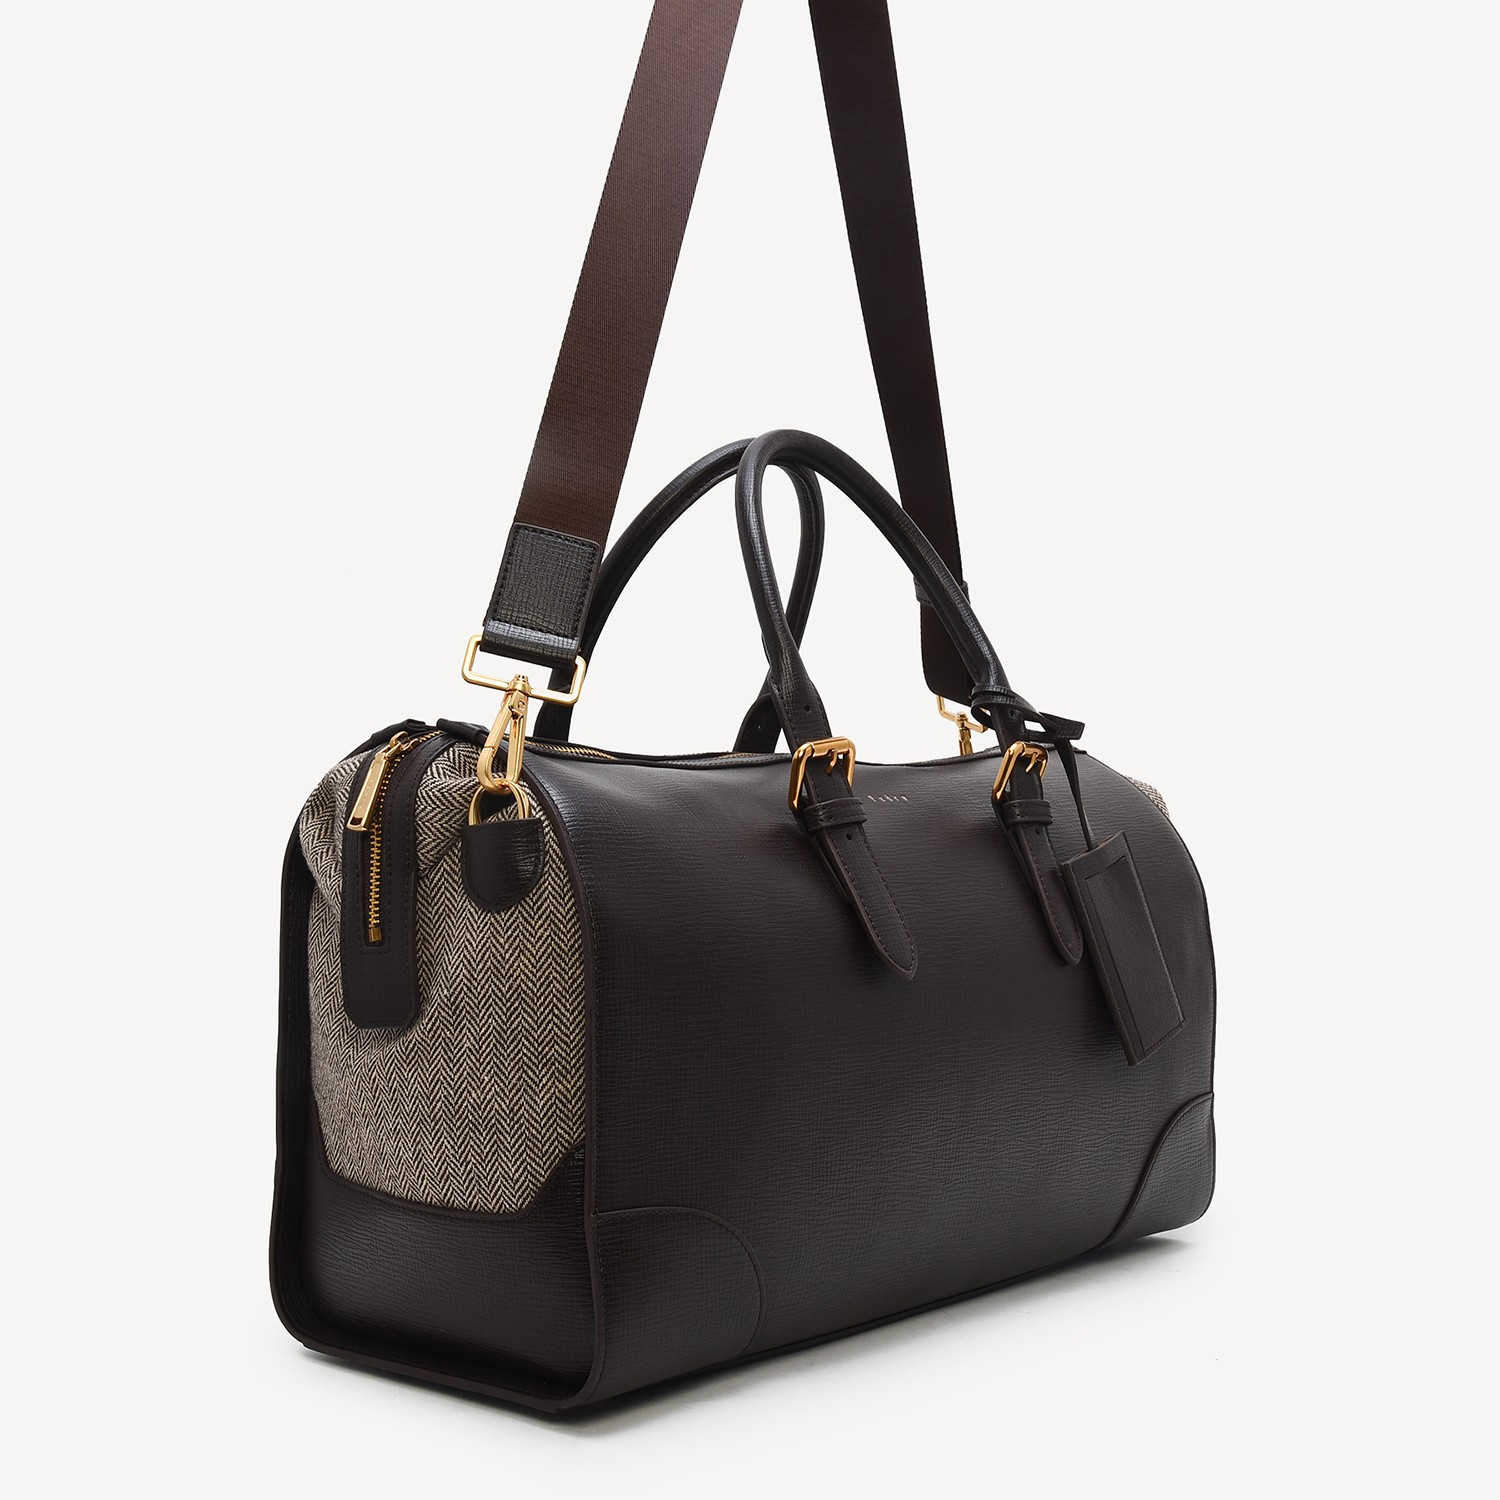 Pedro   Where to buy messengers, briefcases, duffels, and laptop bags for men